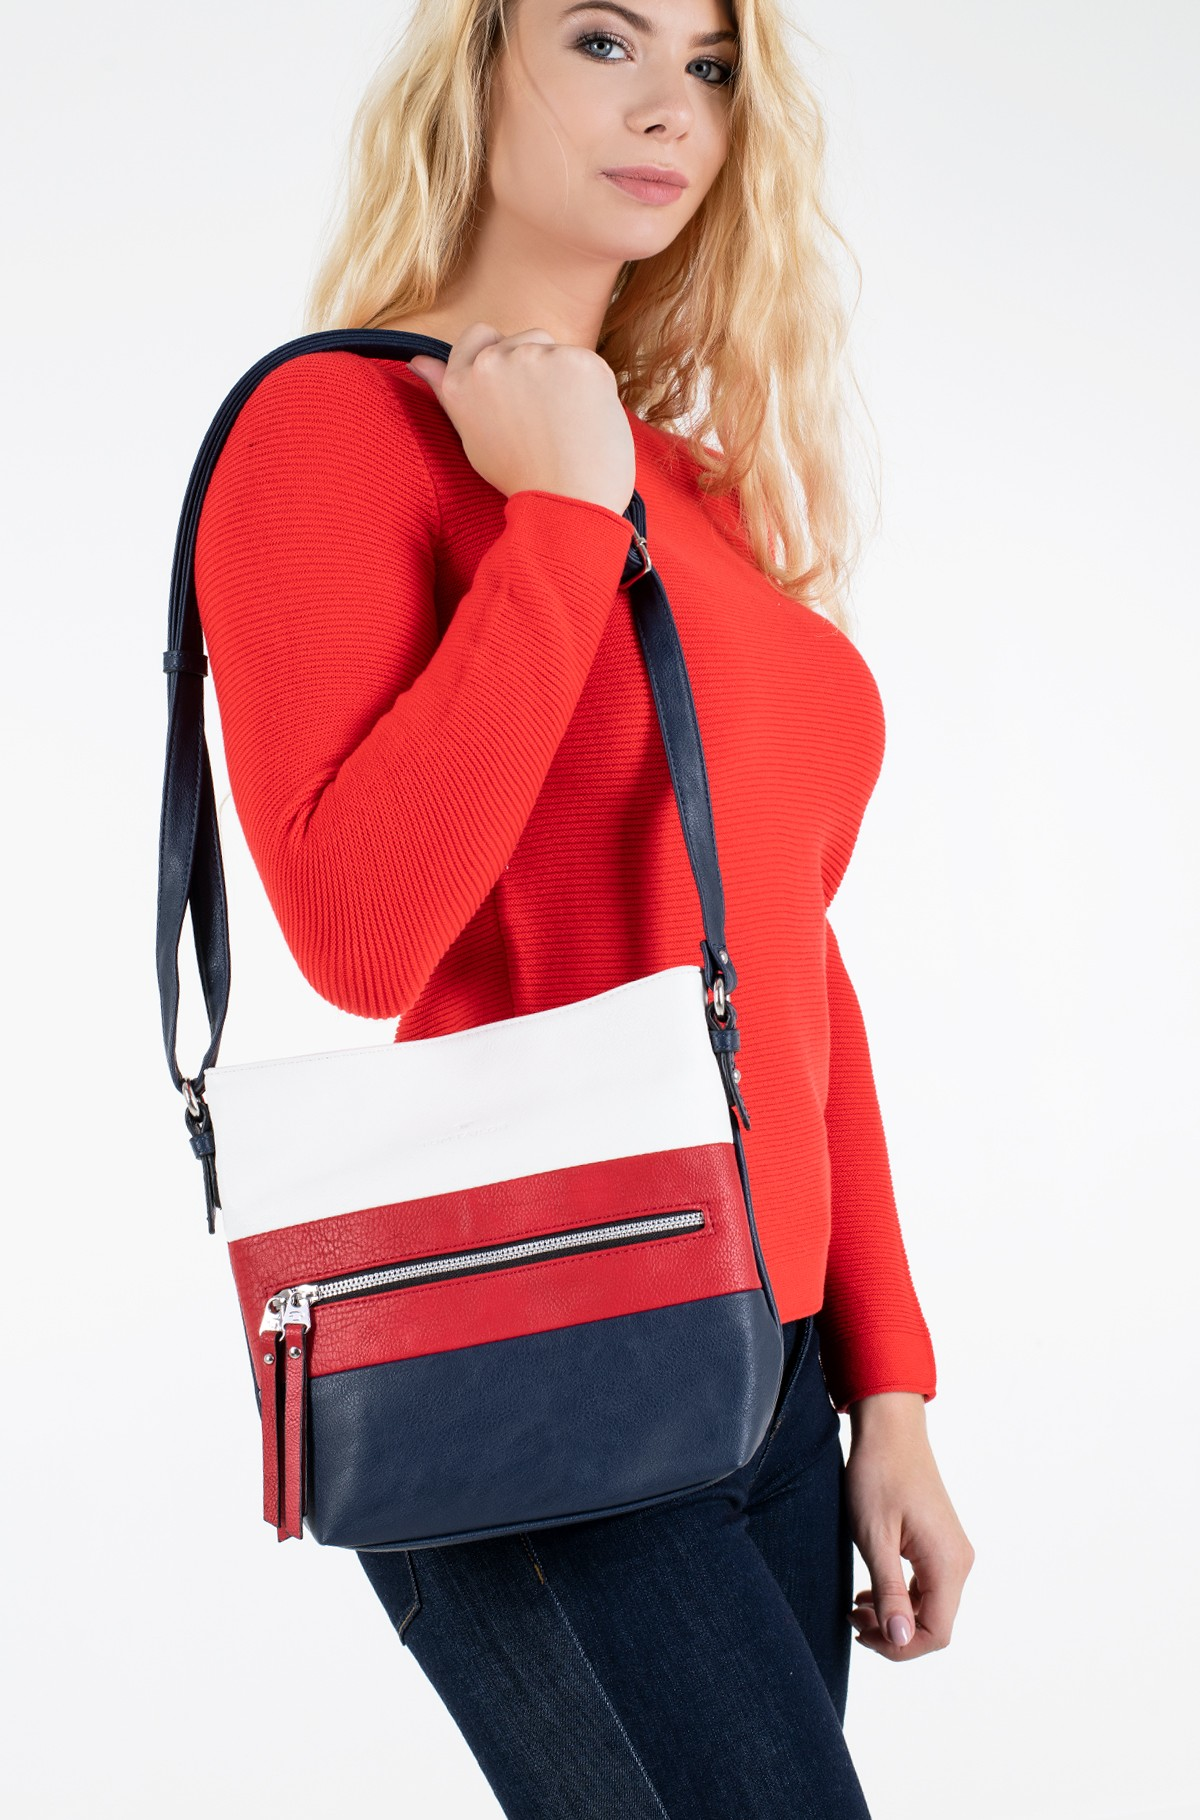 Shoulder bag 26103-full-1